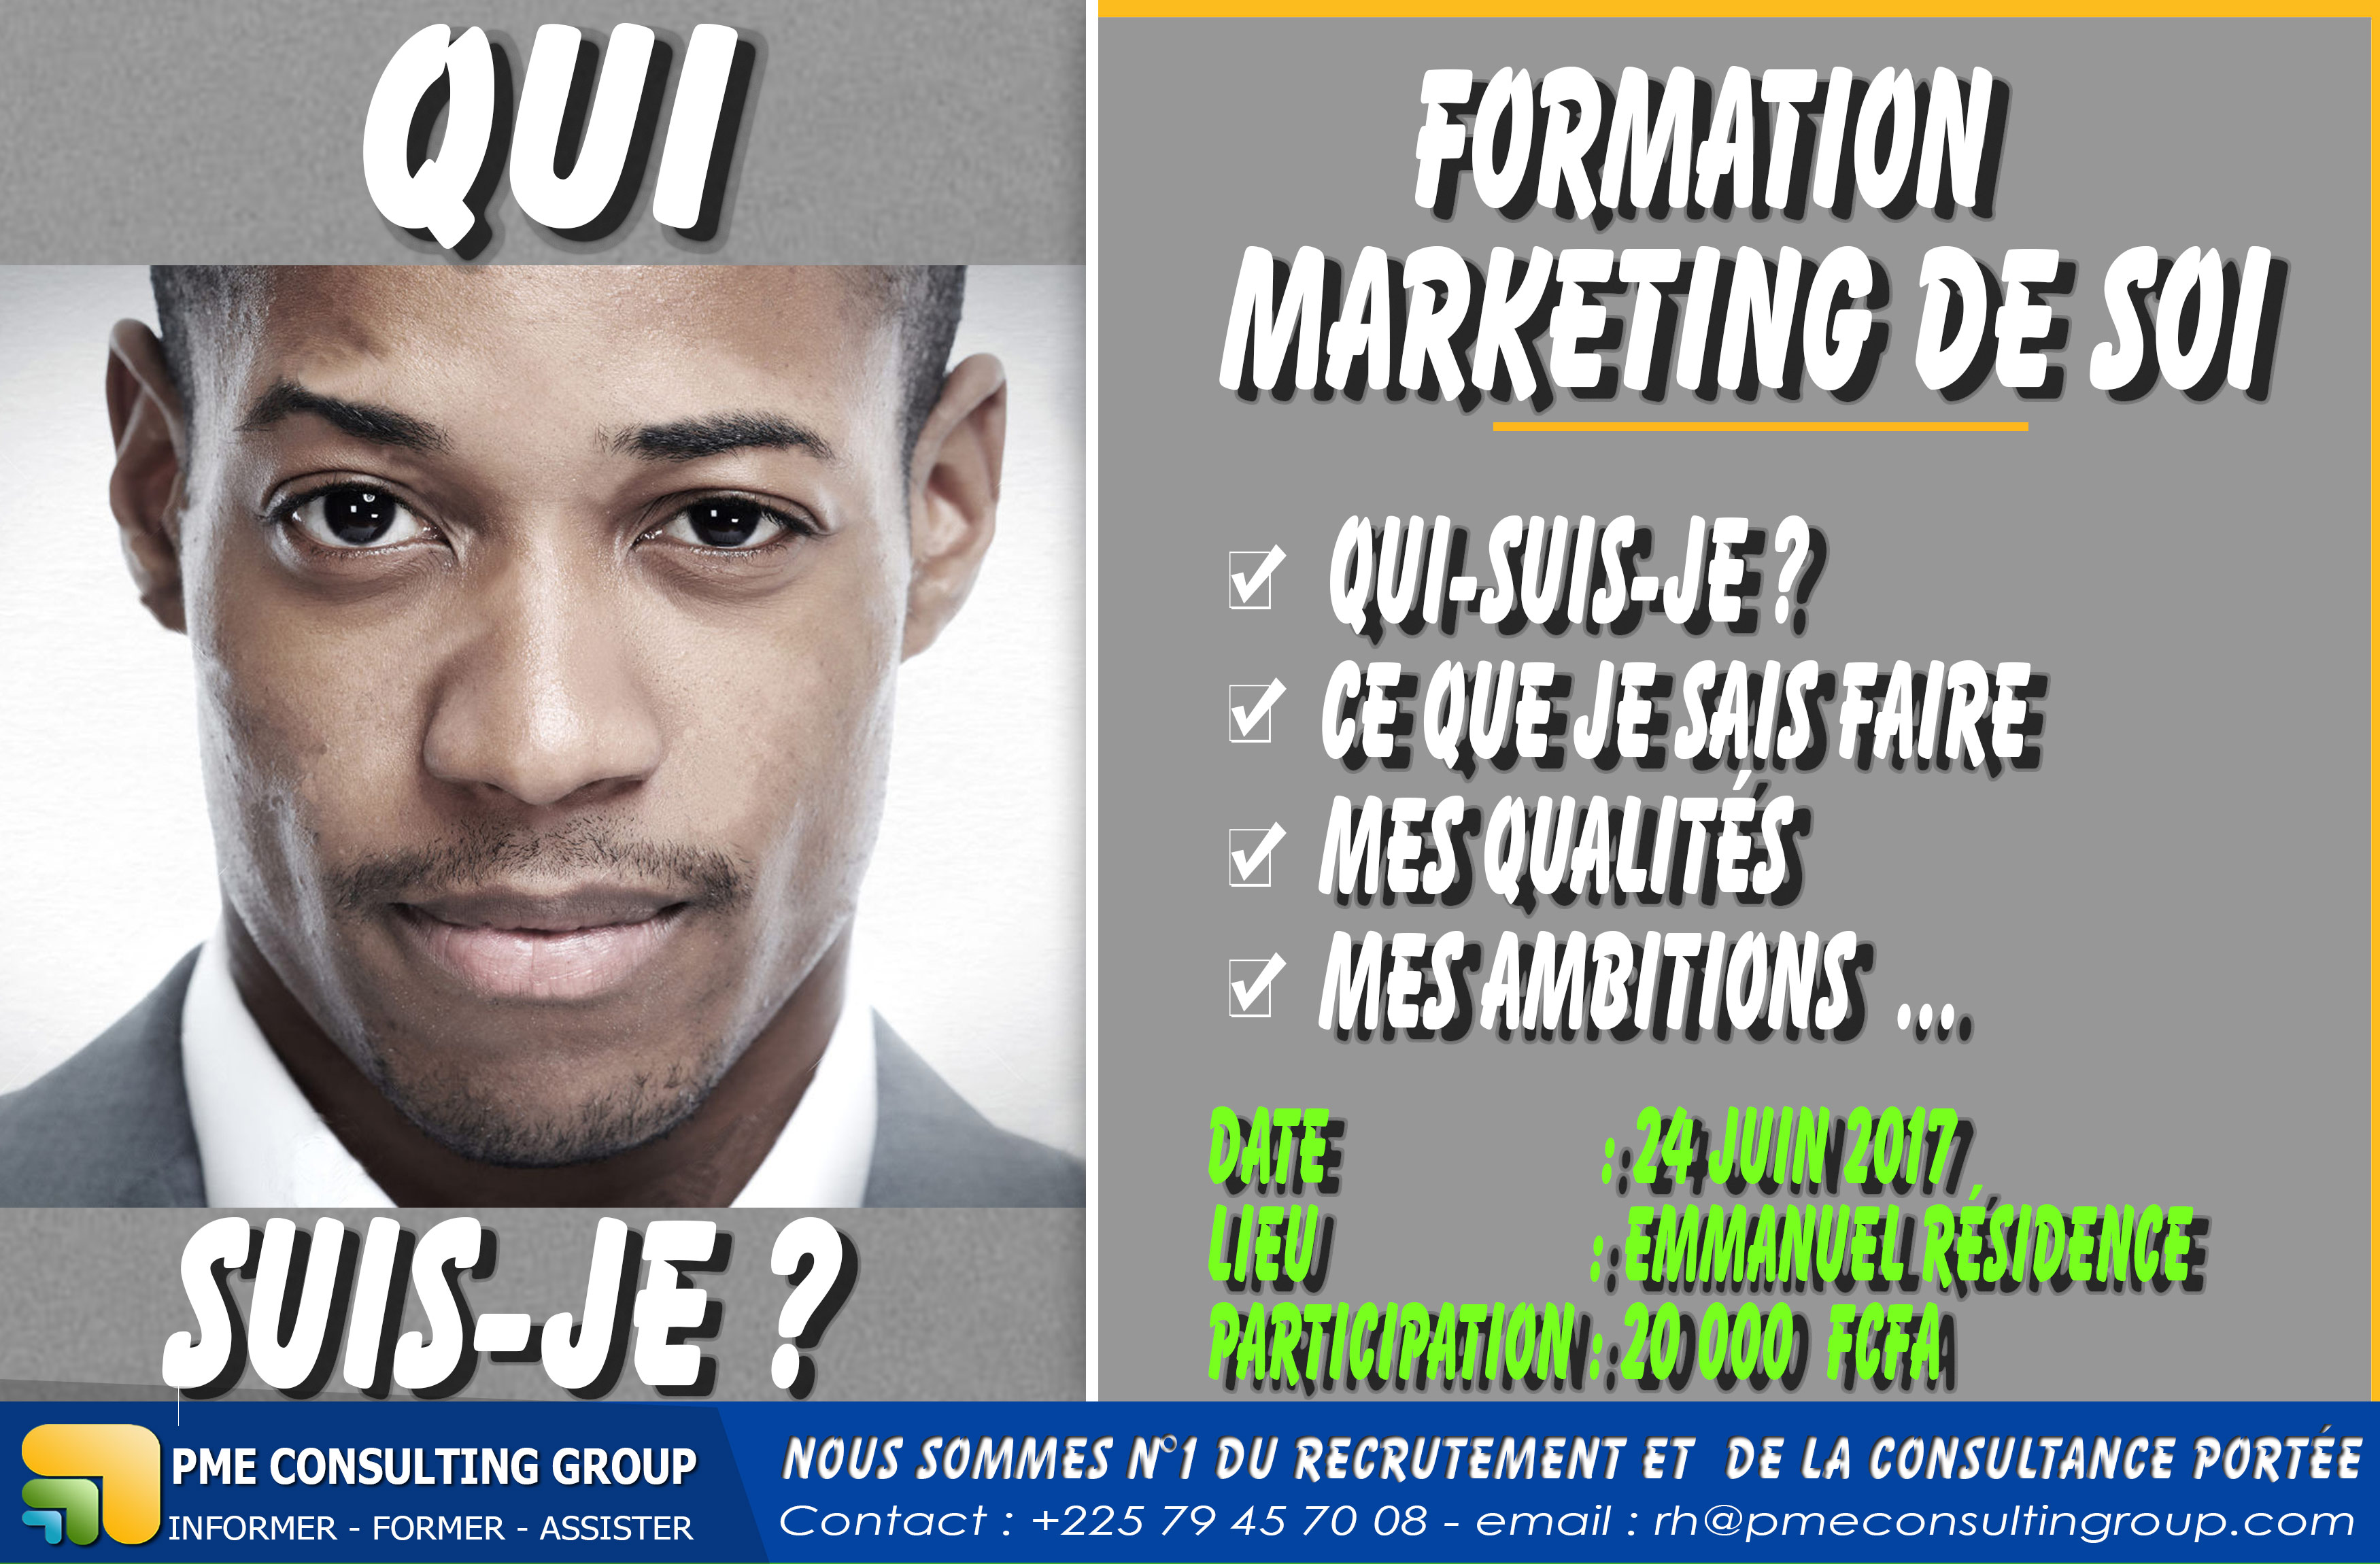 FAIRE LE MARKETING DE SOI